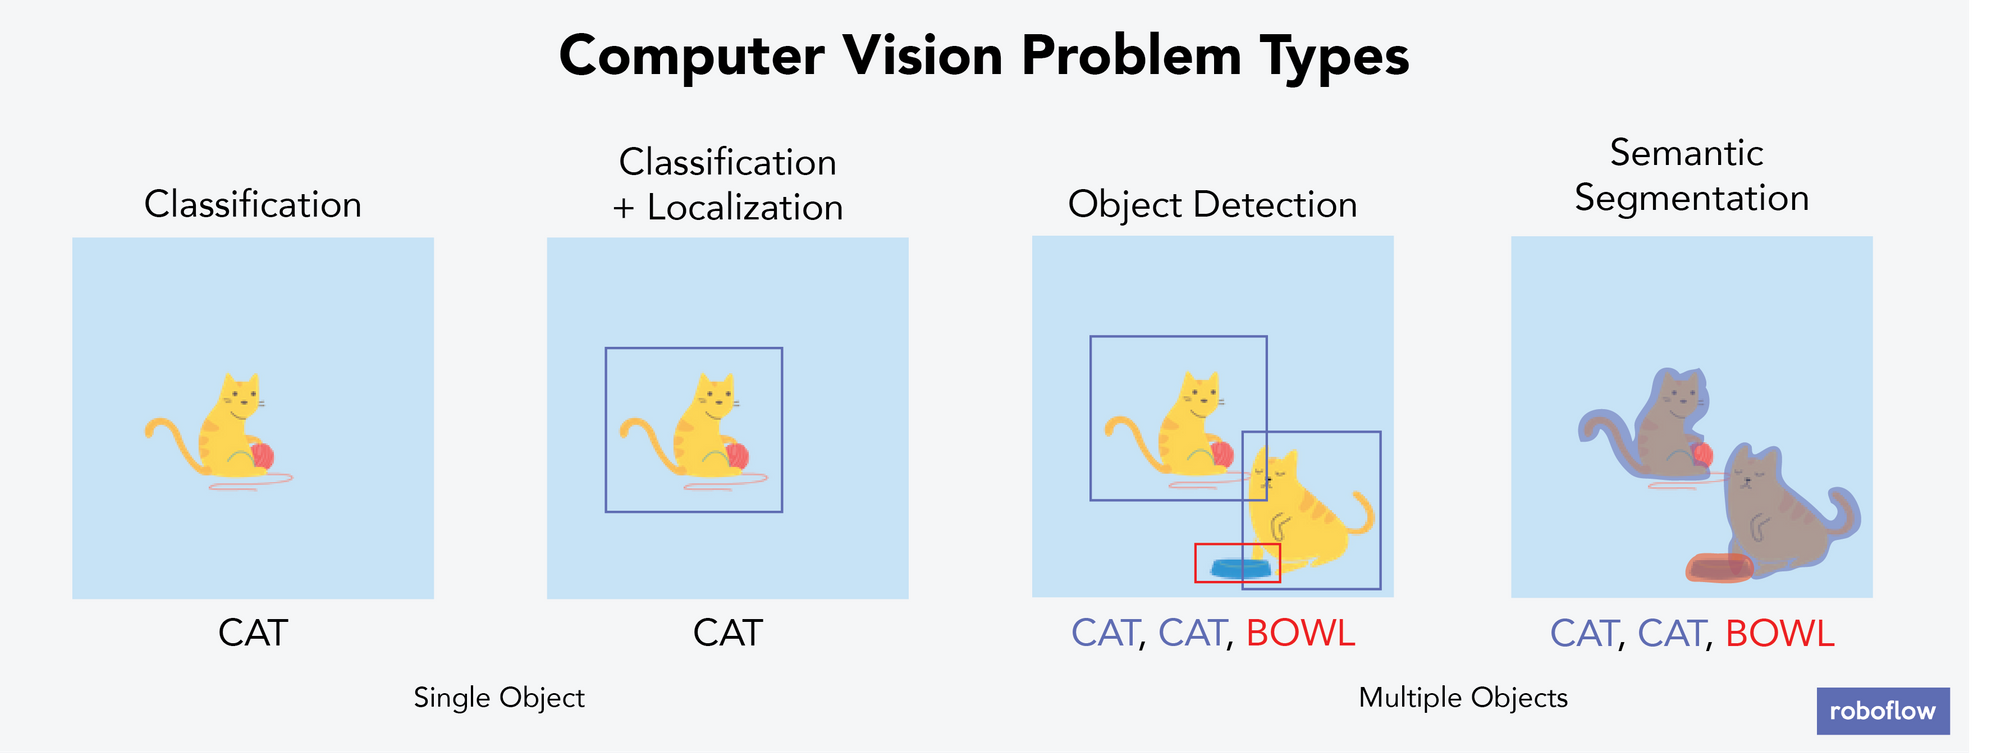 The four types of computer vision problems: classification (with an image of a cat), classification+localization (with an image of a cat with a bounding box around the cat), object detection (with an image of two cats and a bowl, with bounding boxes around each object), and semantic segmentation (with an image of two cats and a bowl, with a non-bounding box but very close outline detecting each object).